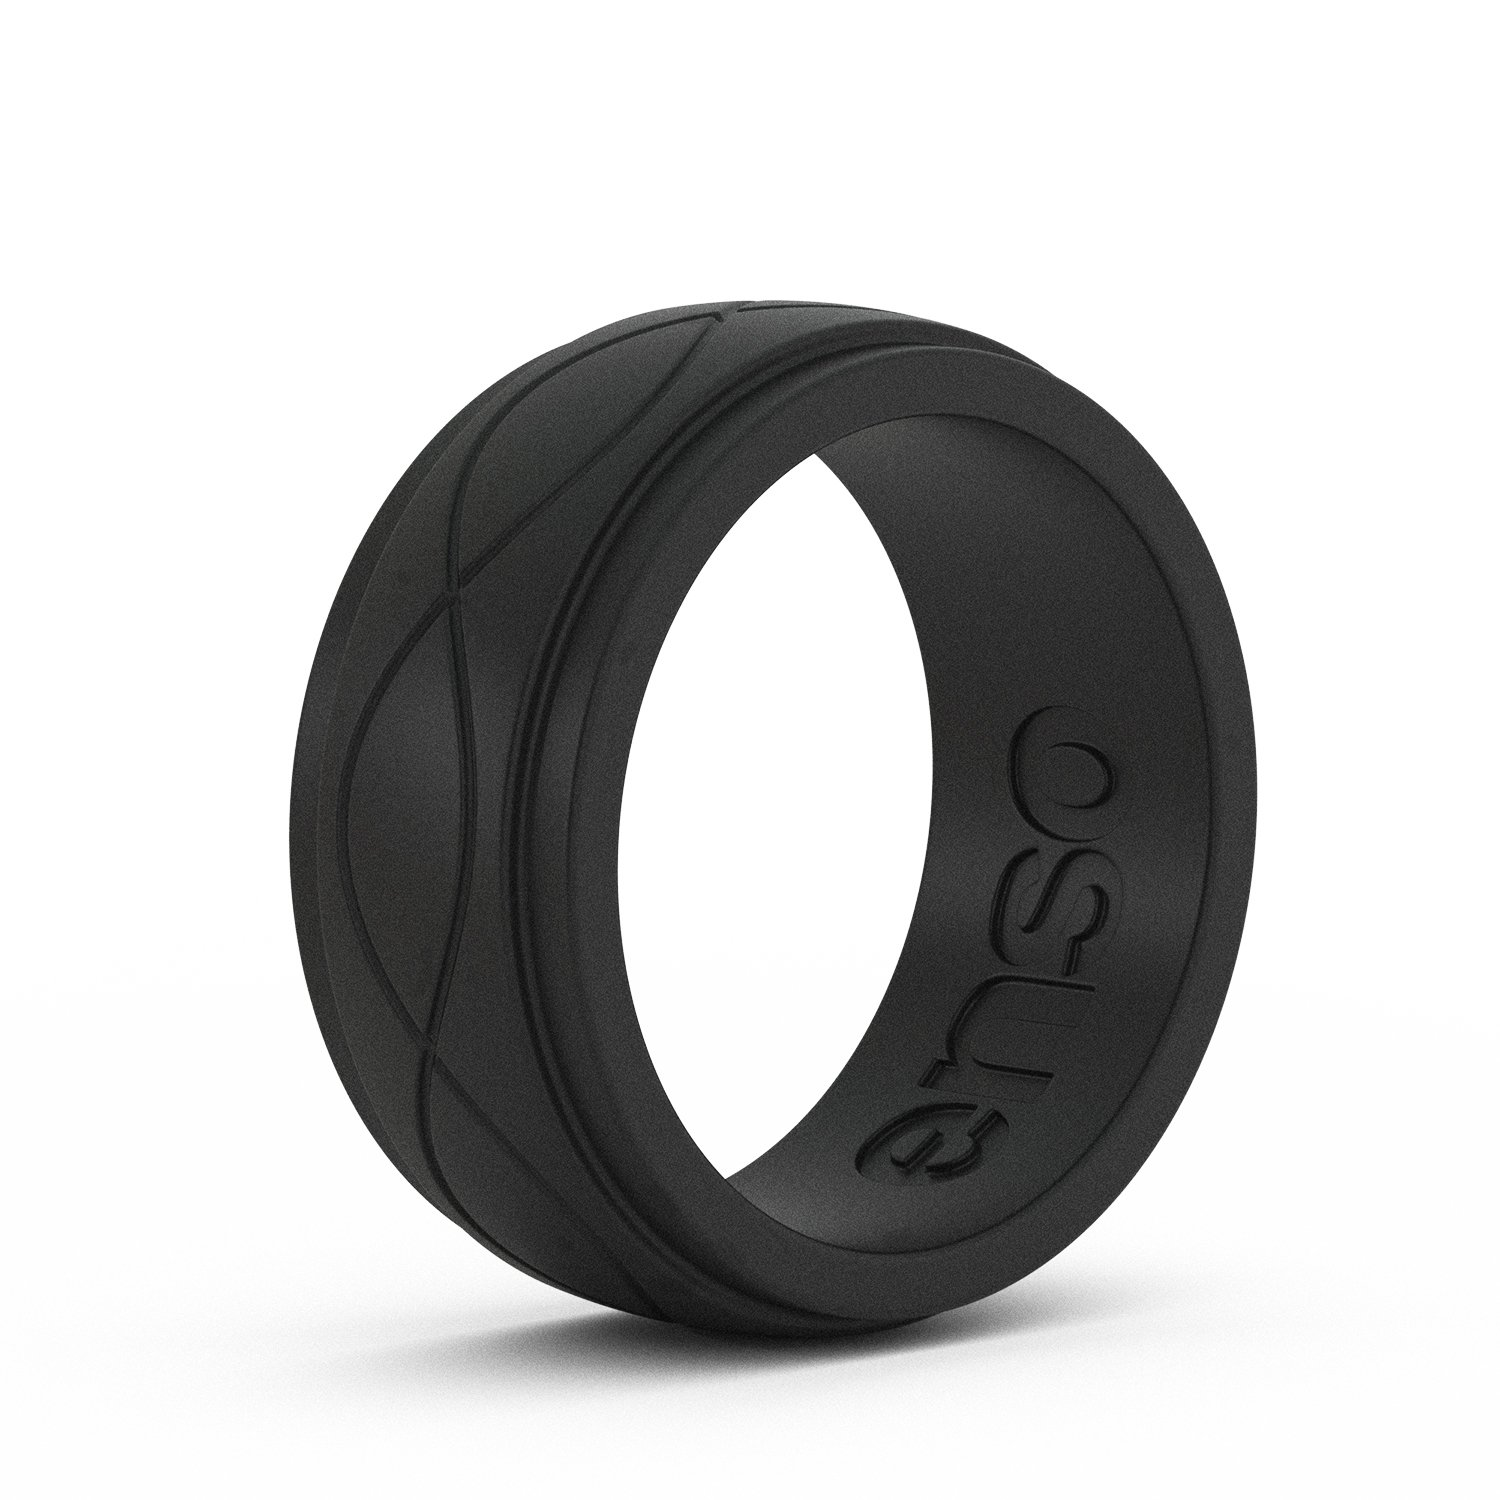 Enso Mens Infinity Silicone Ring, Obsidian Black 10 by Enso Rings (Image #1)